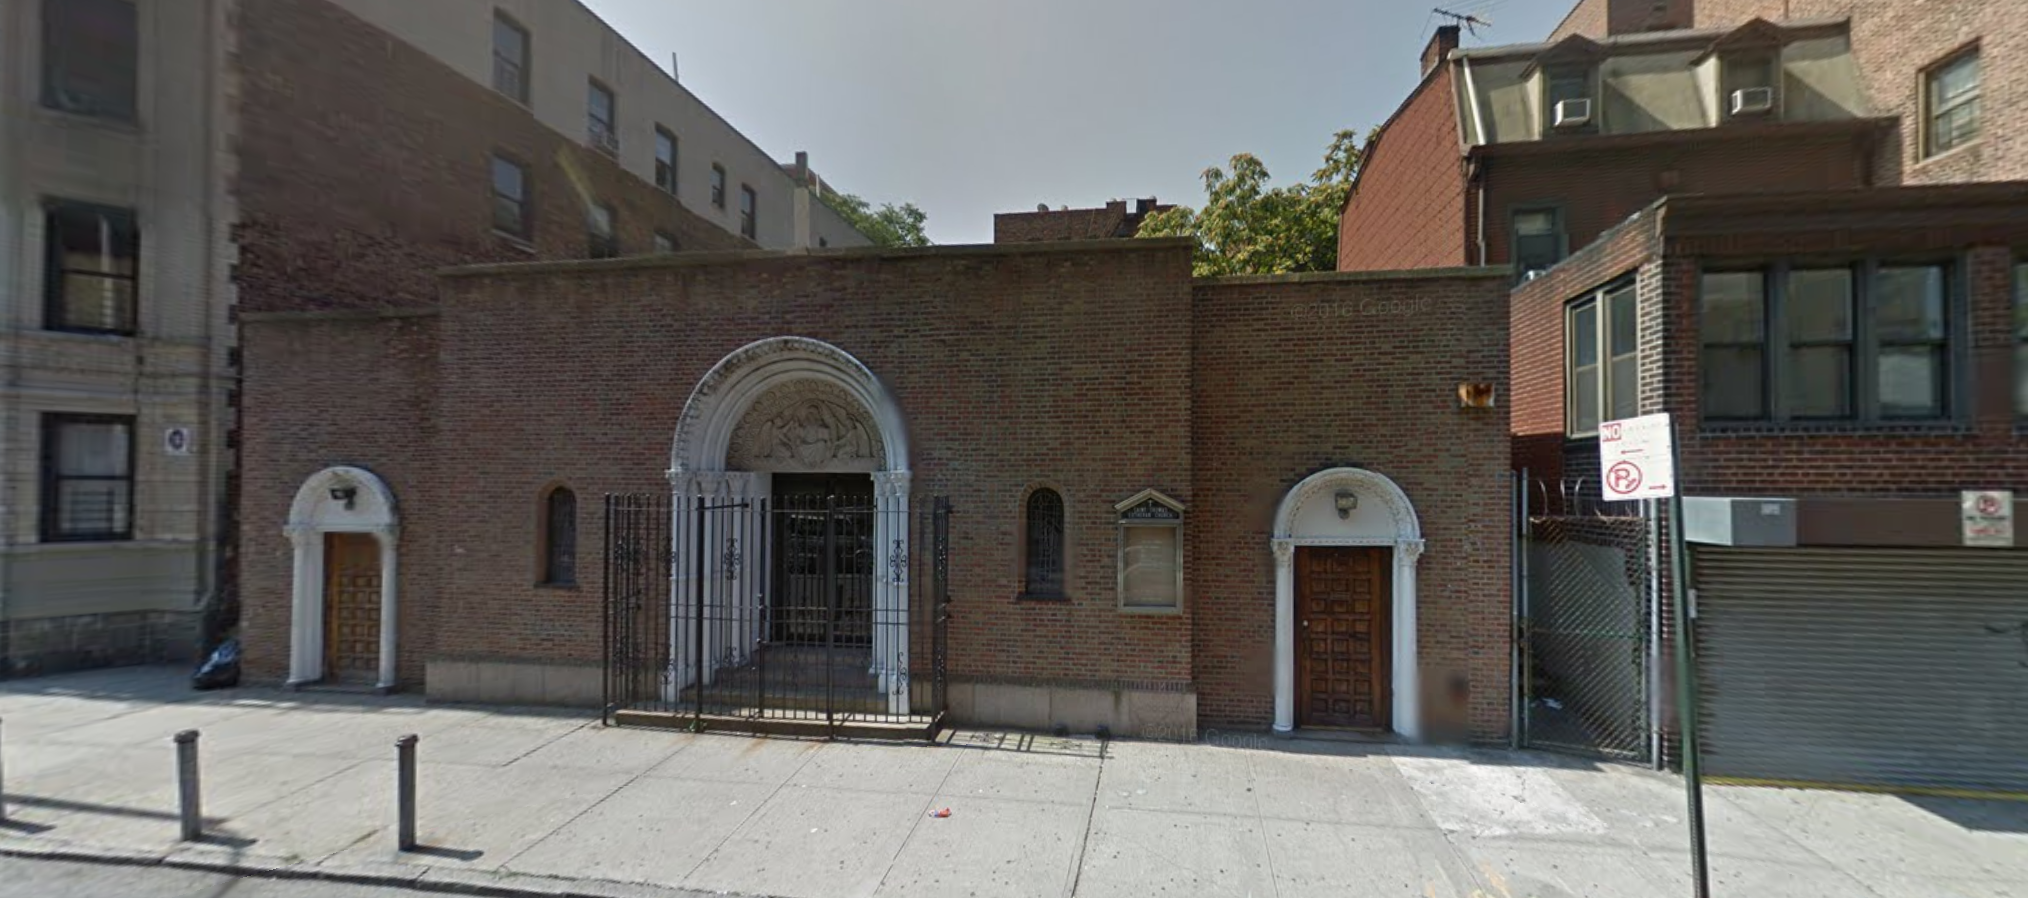 220 East 178th Street, image via Google Maps